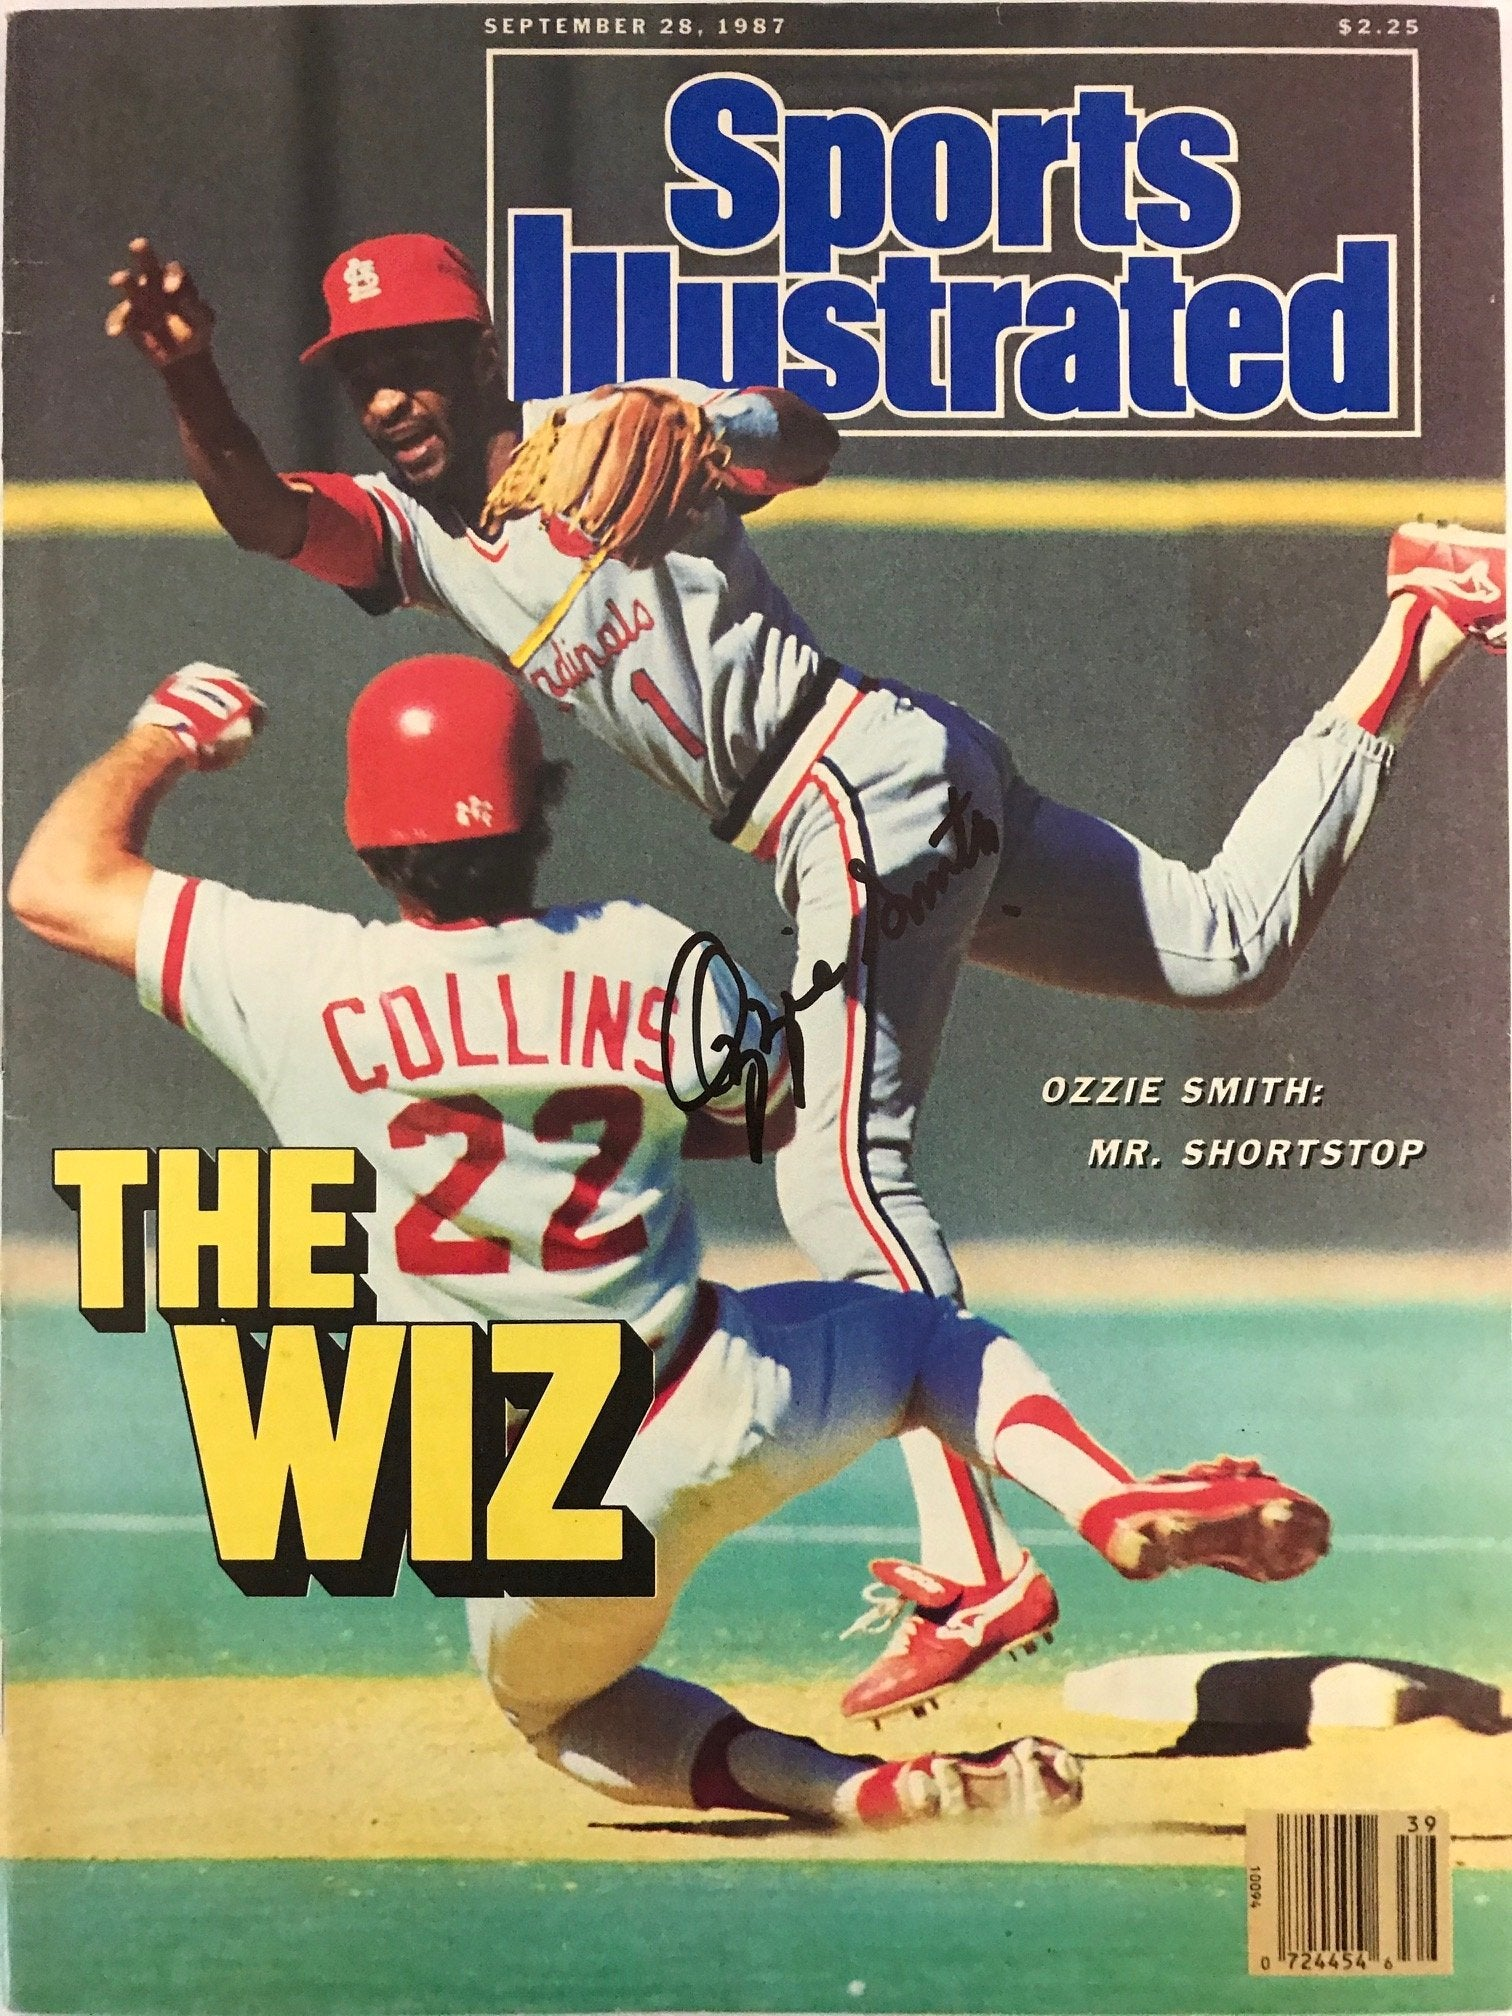 Ozzie Smith Signed Sports Illustrated September 28 1987 PSM-Powers Sports Memorabilia